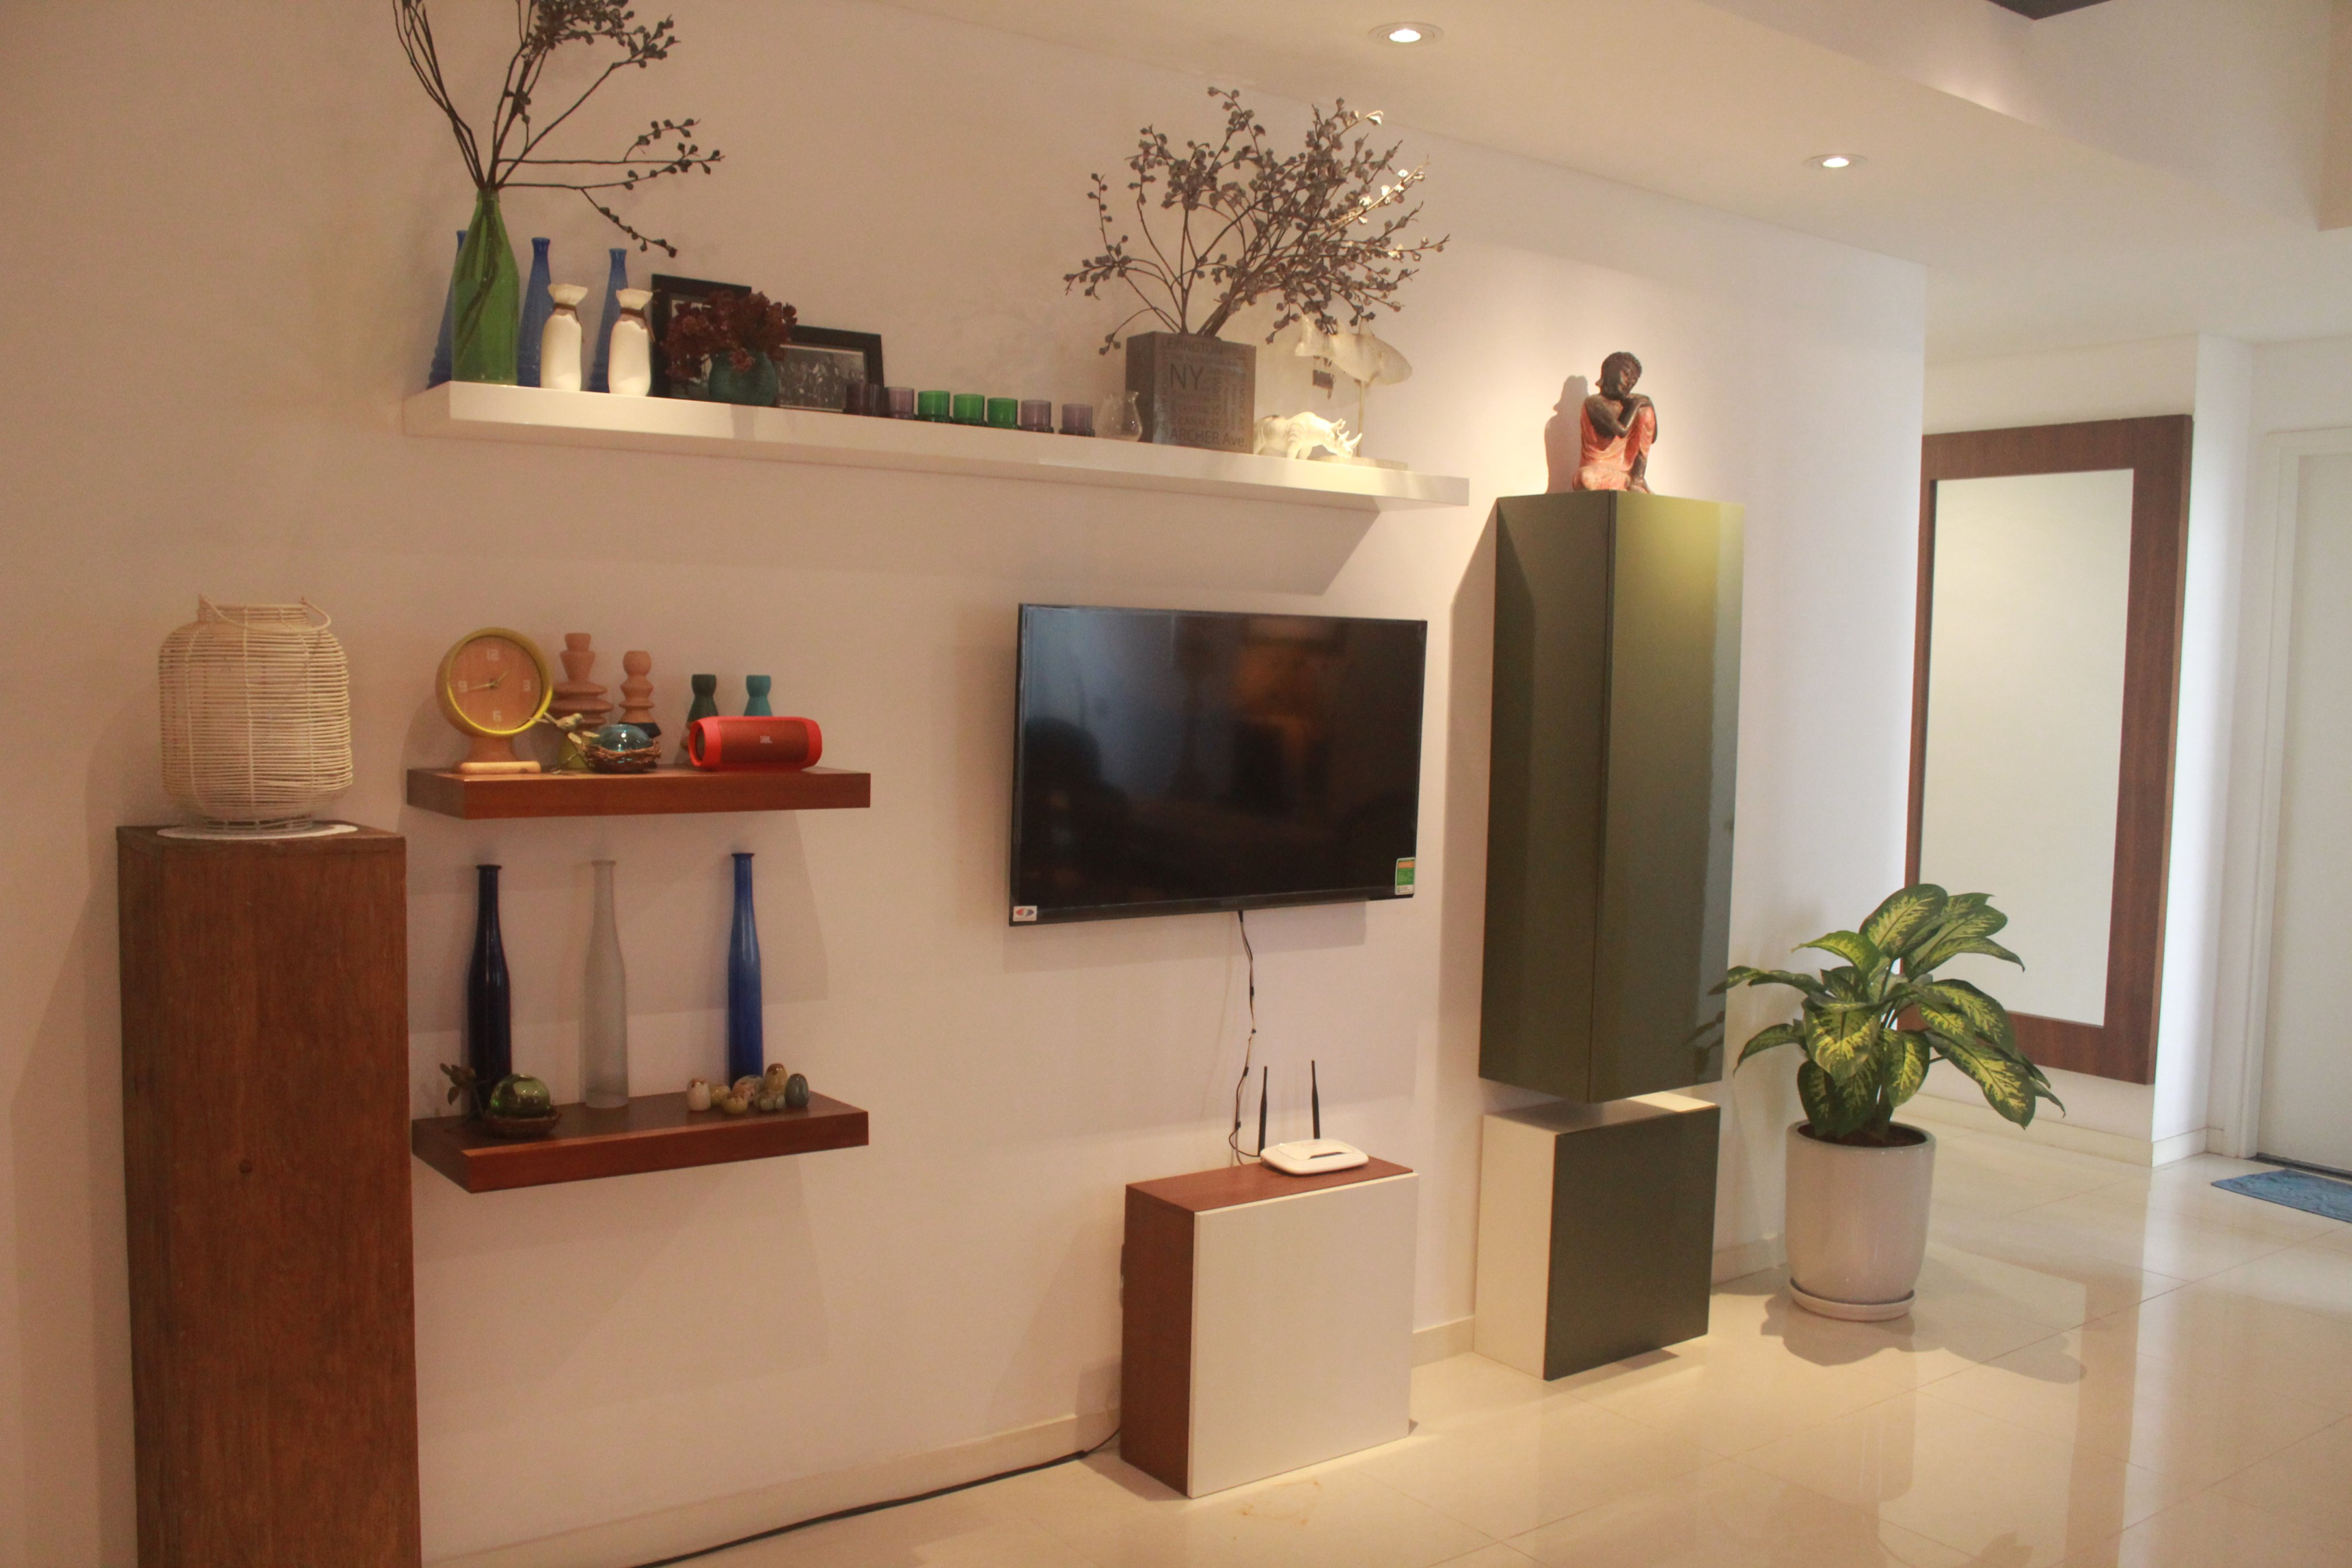 saigon pearl apartment for rent in binh thanh district hcmc D201237(2)